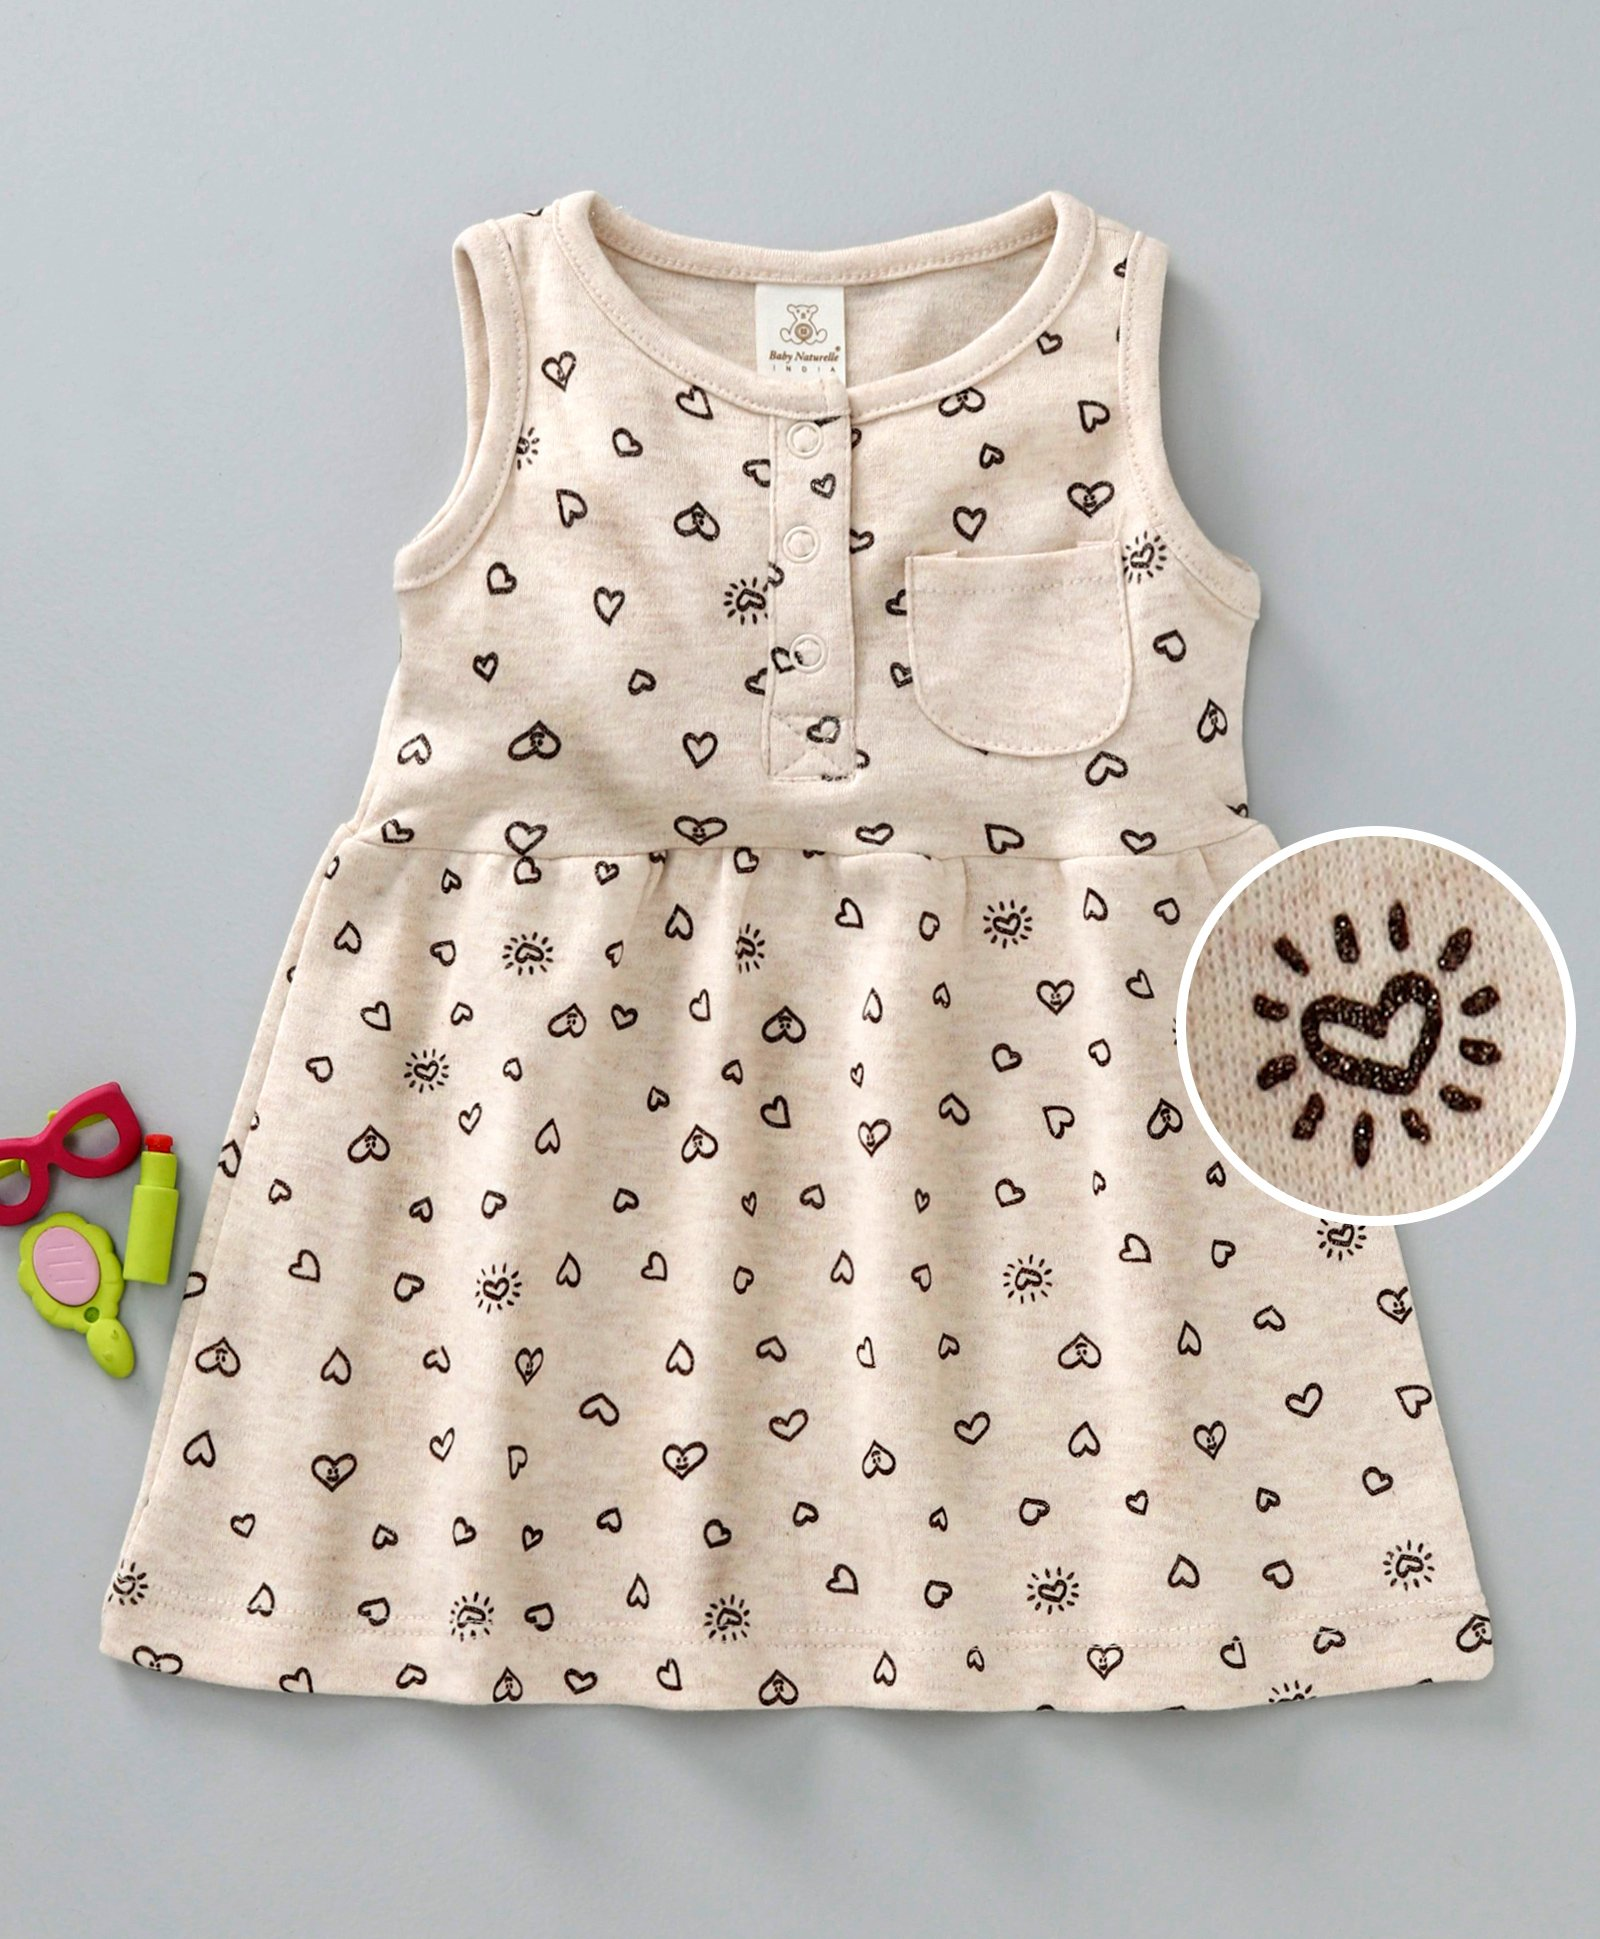 58af8ce3cd81a Buy Baby Naturelle & Me Sleeveless Frock Heart Print Beige for Girls (3-6  Months) Online in India, Shop at FirstCry.com - 2513641